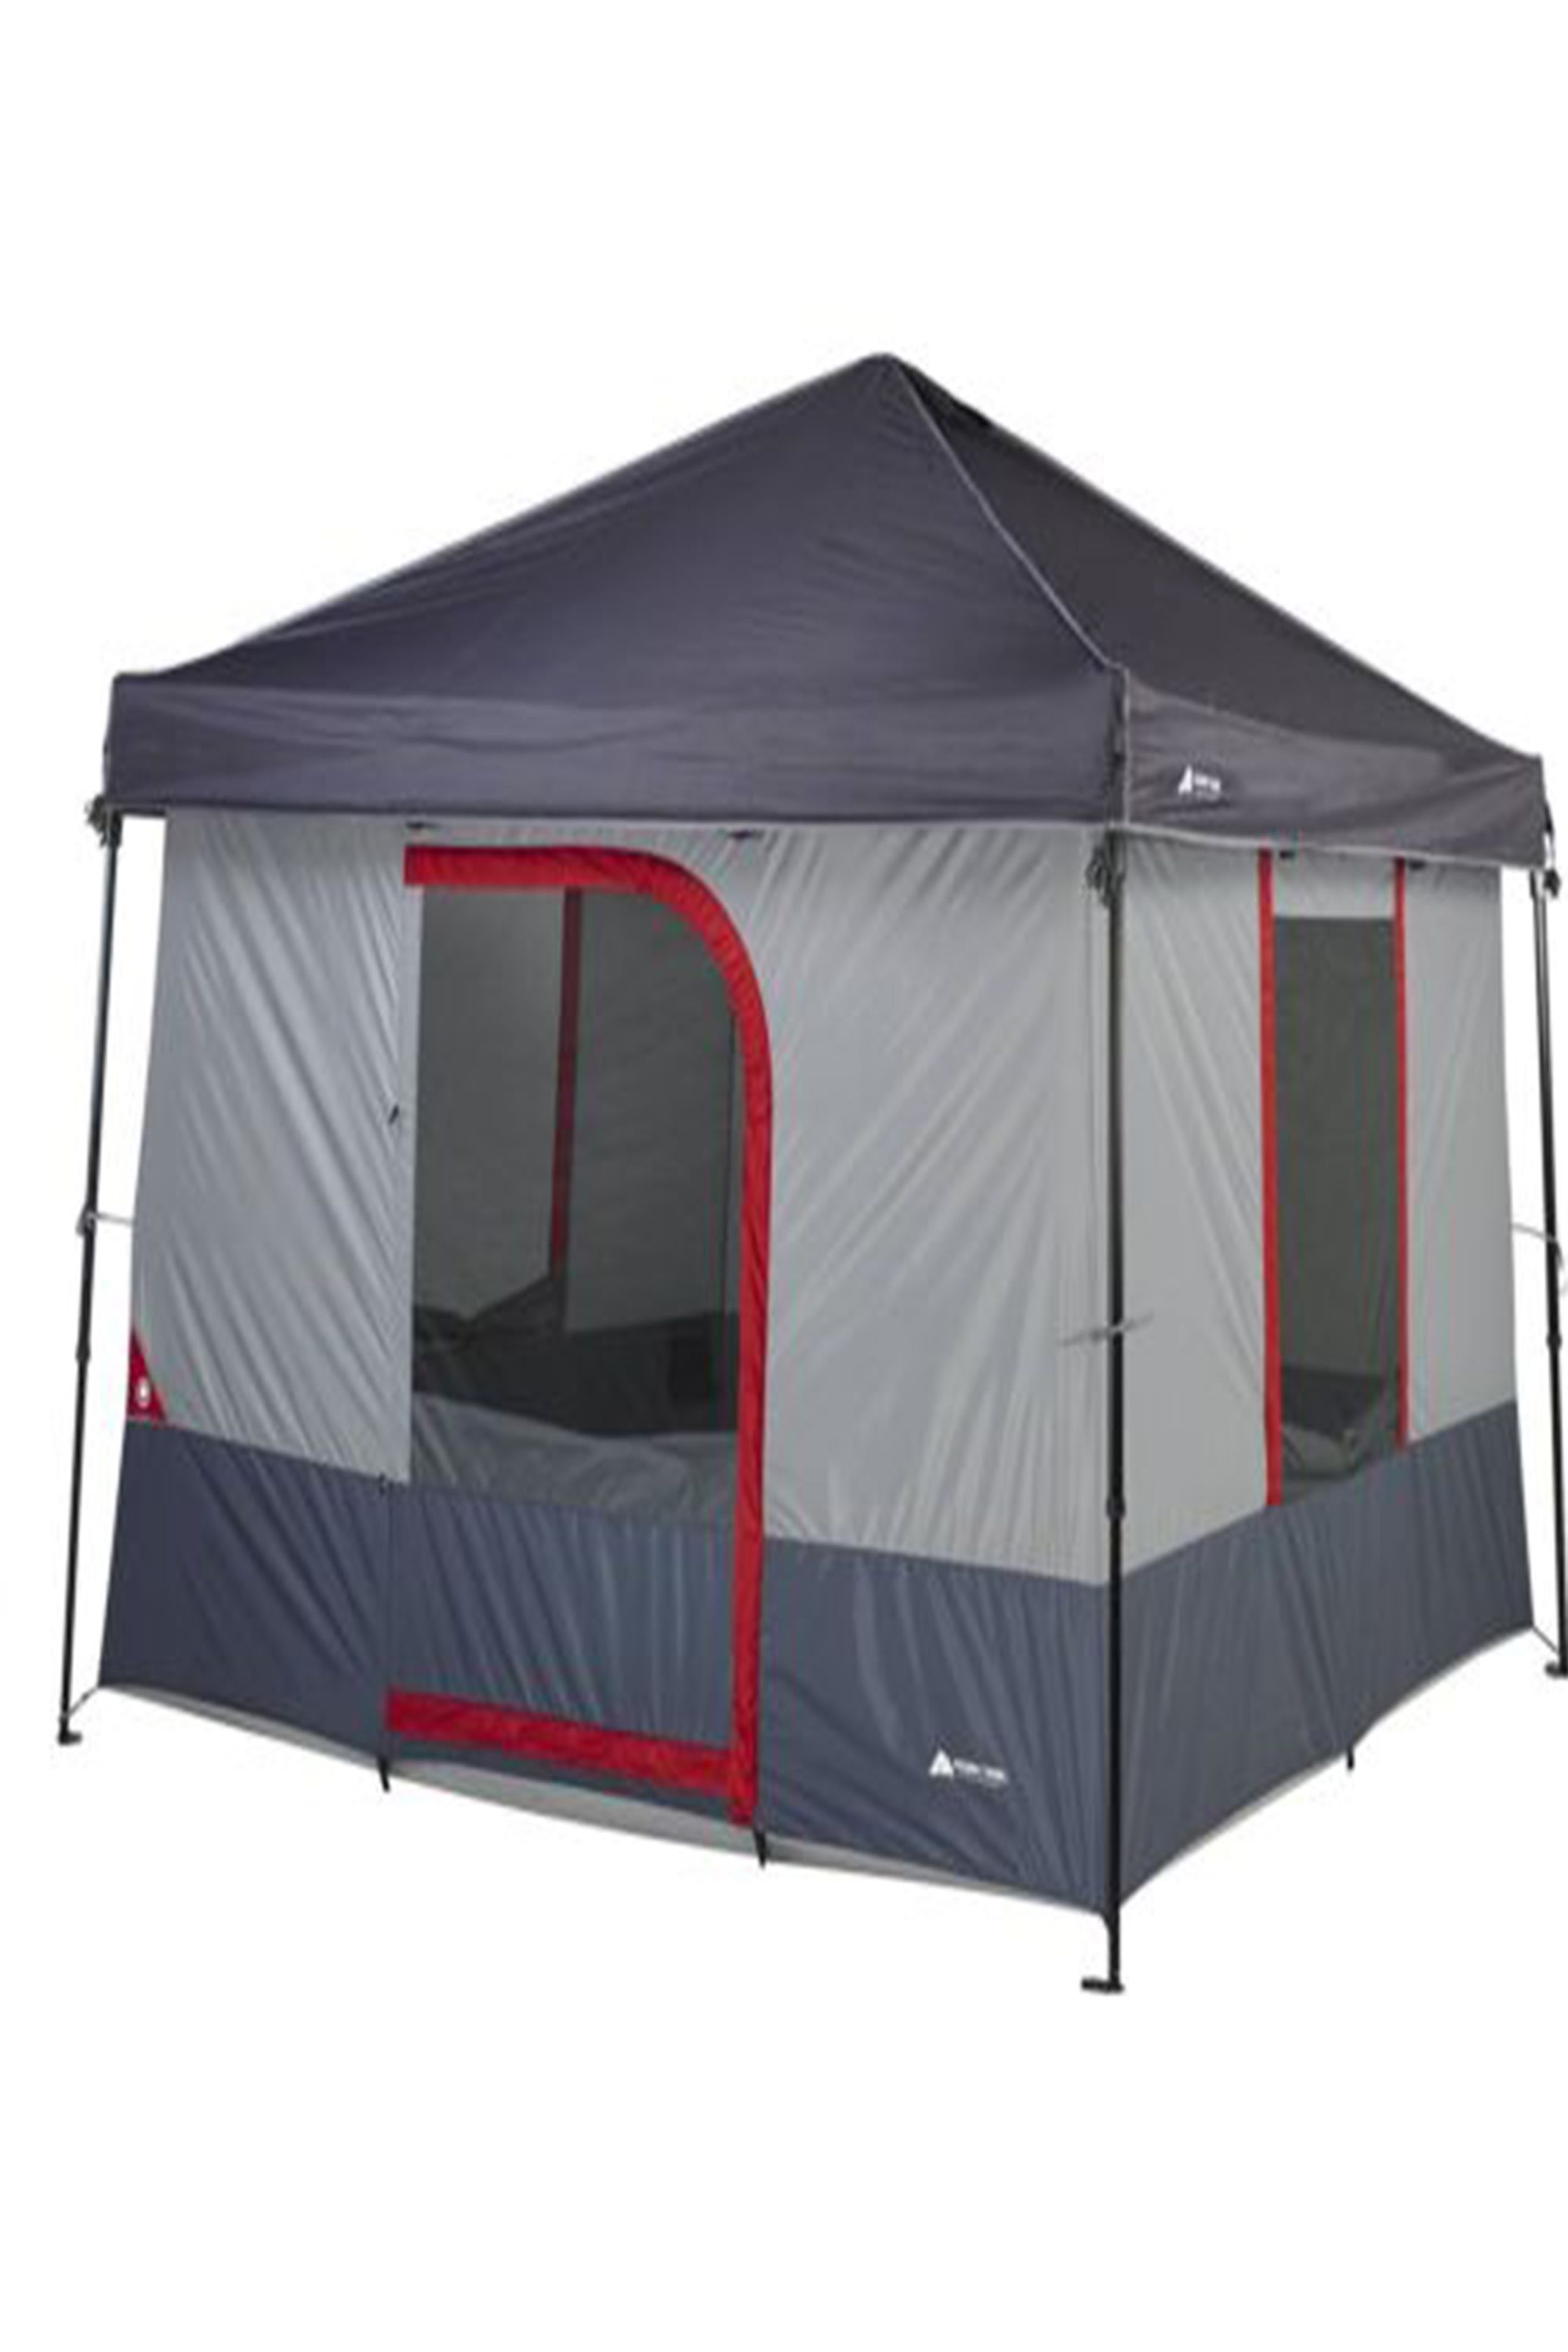 This #Ozark Trail #Tent gives you so much space and comfort for your